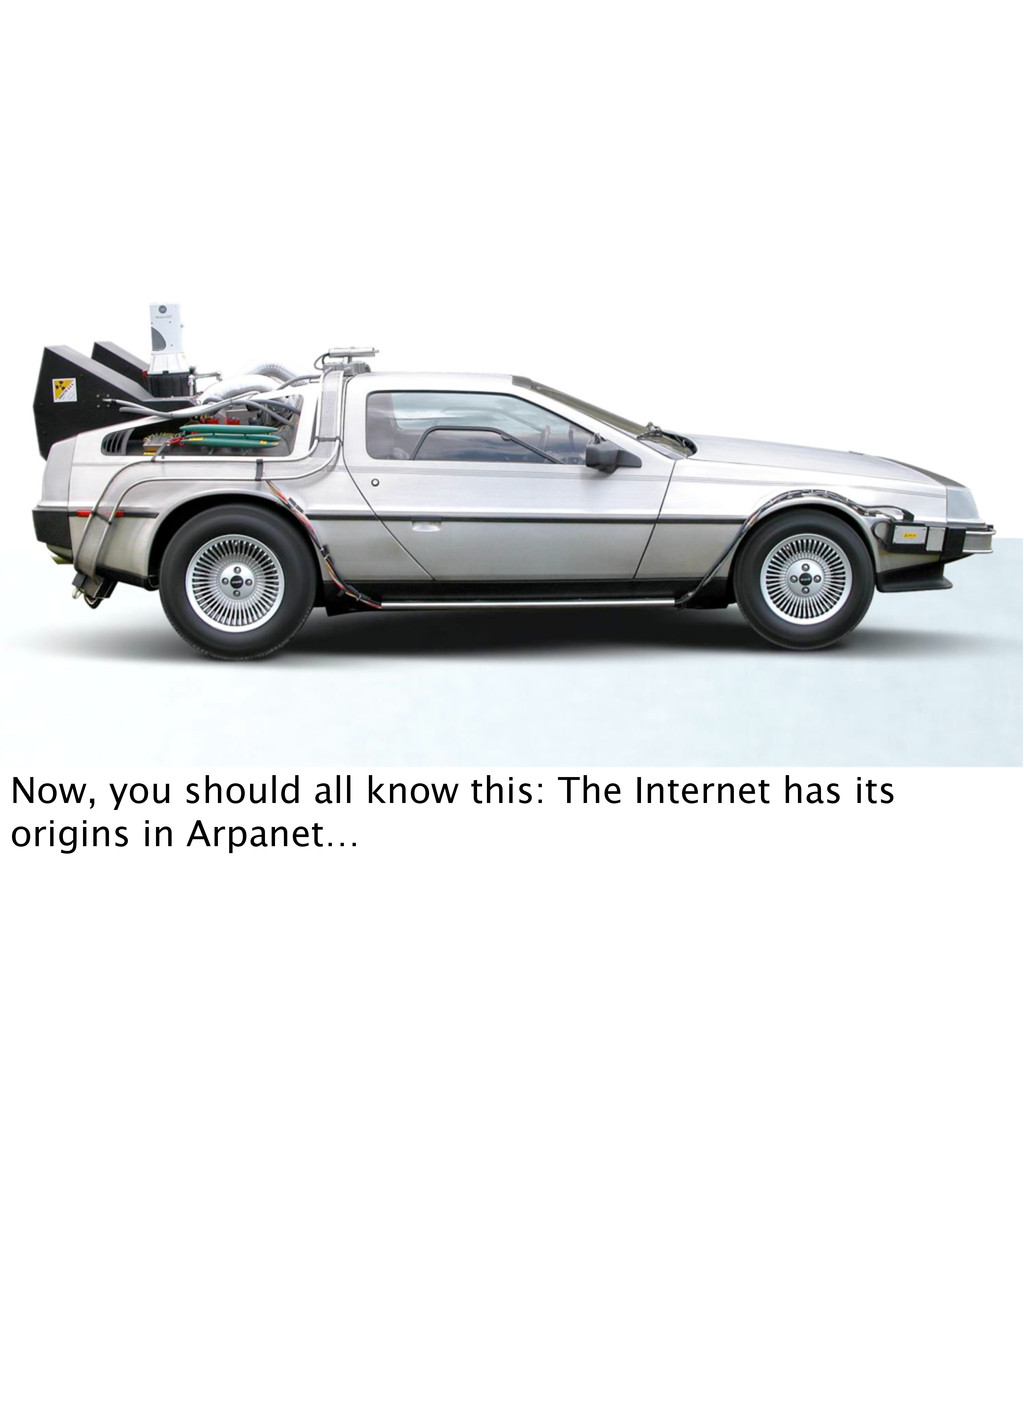 Now, you should all know this: The Internet has...